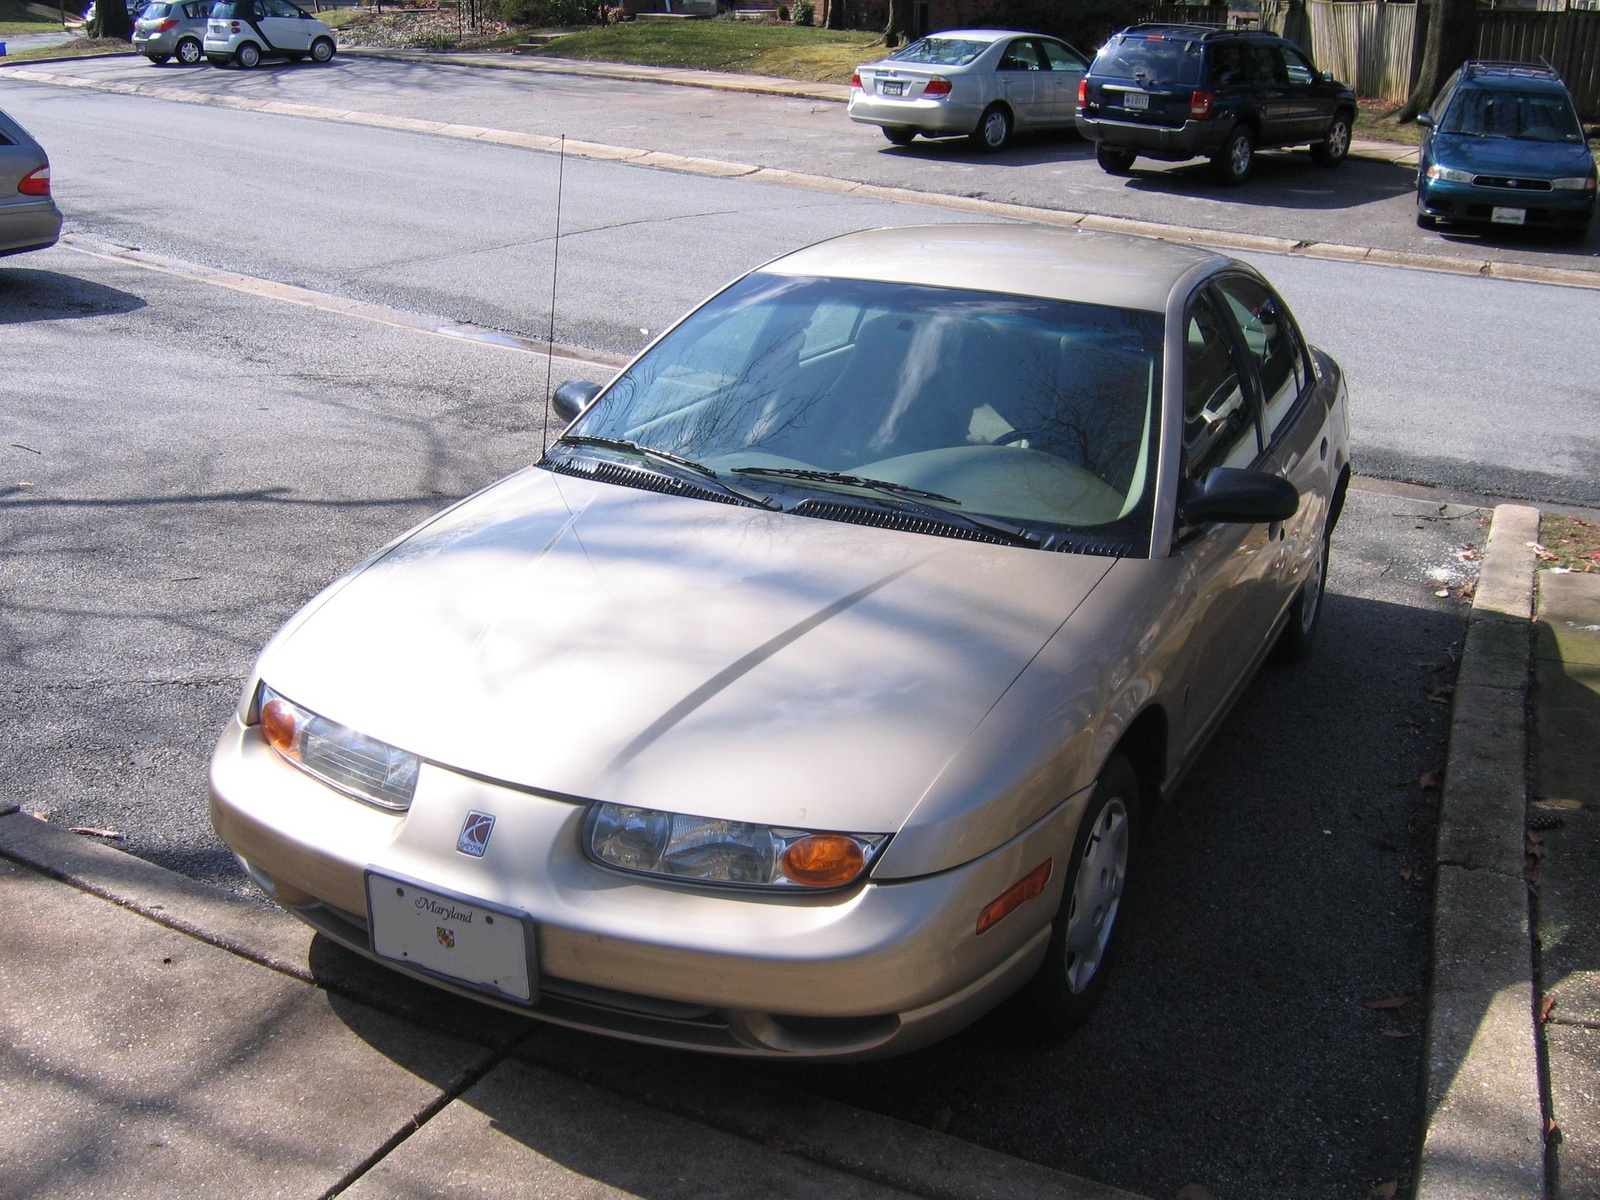 Picture of 2002 Saturn S-Series 4 Dr SL1 Sedan